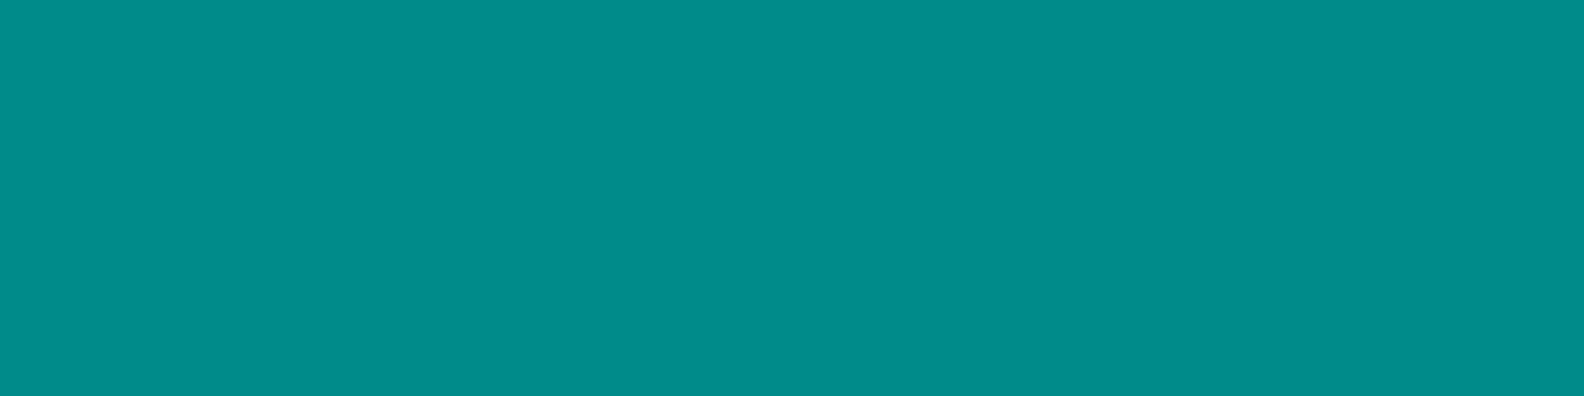 1584x396 Dark Cyan Solid Color Background